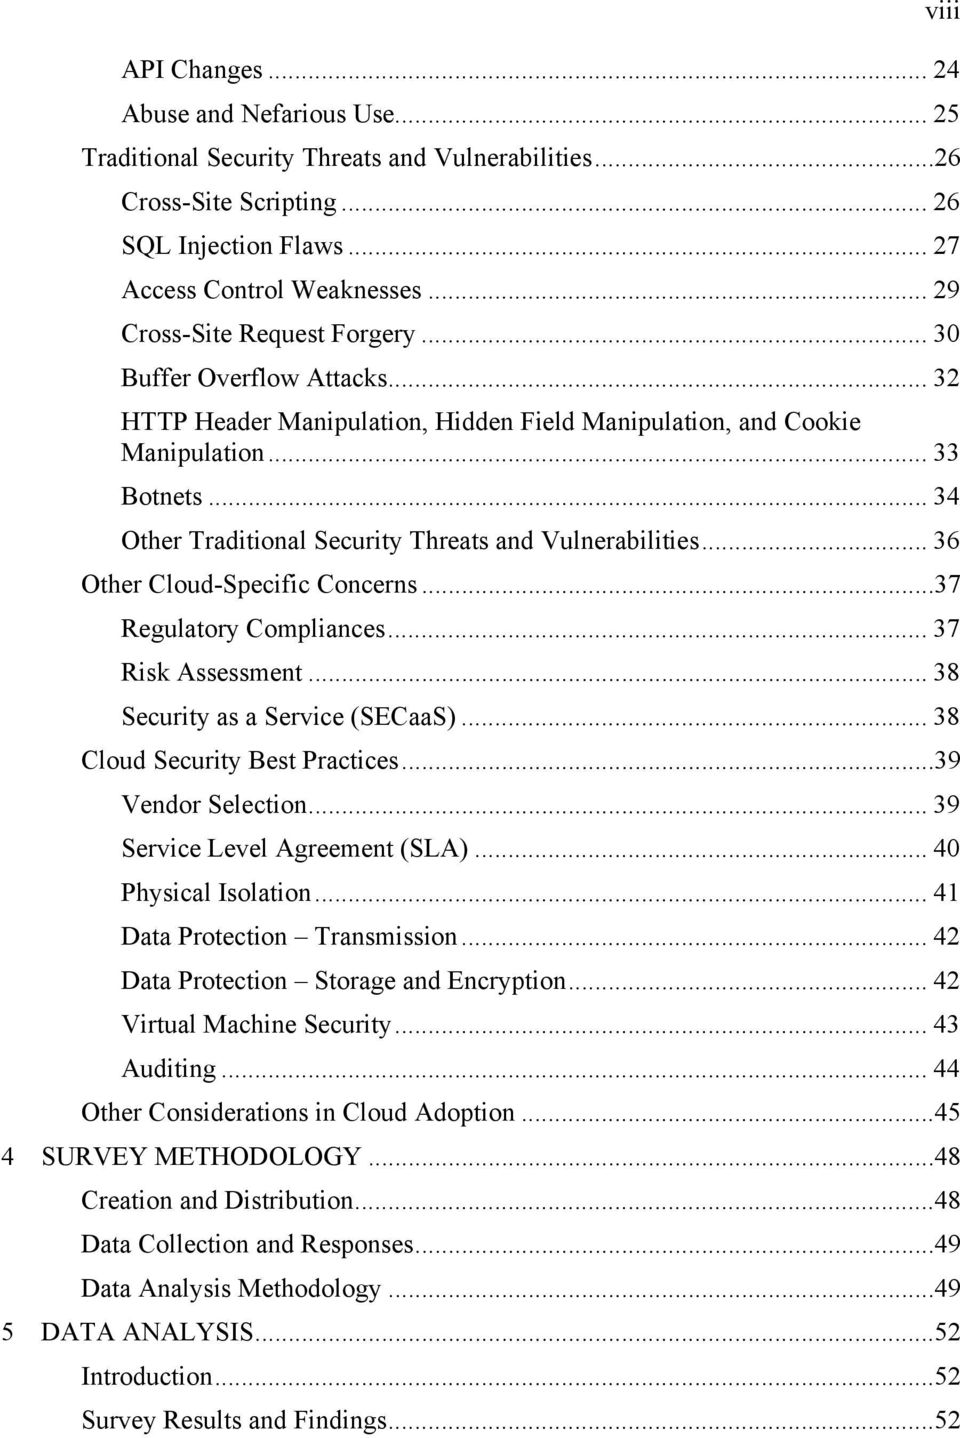 .. 34 Other Traditional Security Threats and Vulnerabilities... 36 Other Cloud-Specific Concerns...37 Regulatory Compliances... 37 Risk Assessment... 38 Security as a Service (SECaaS).